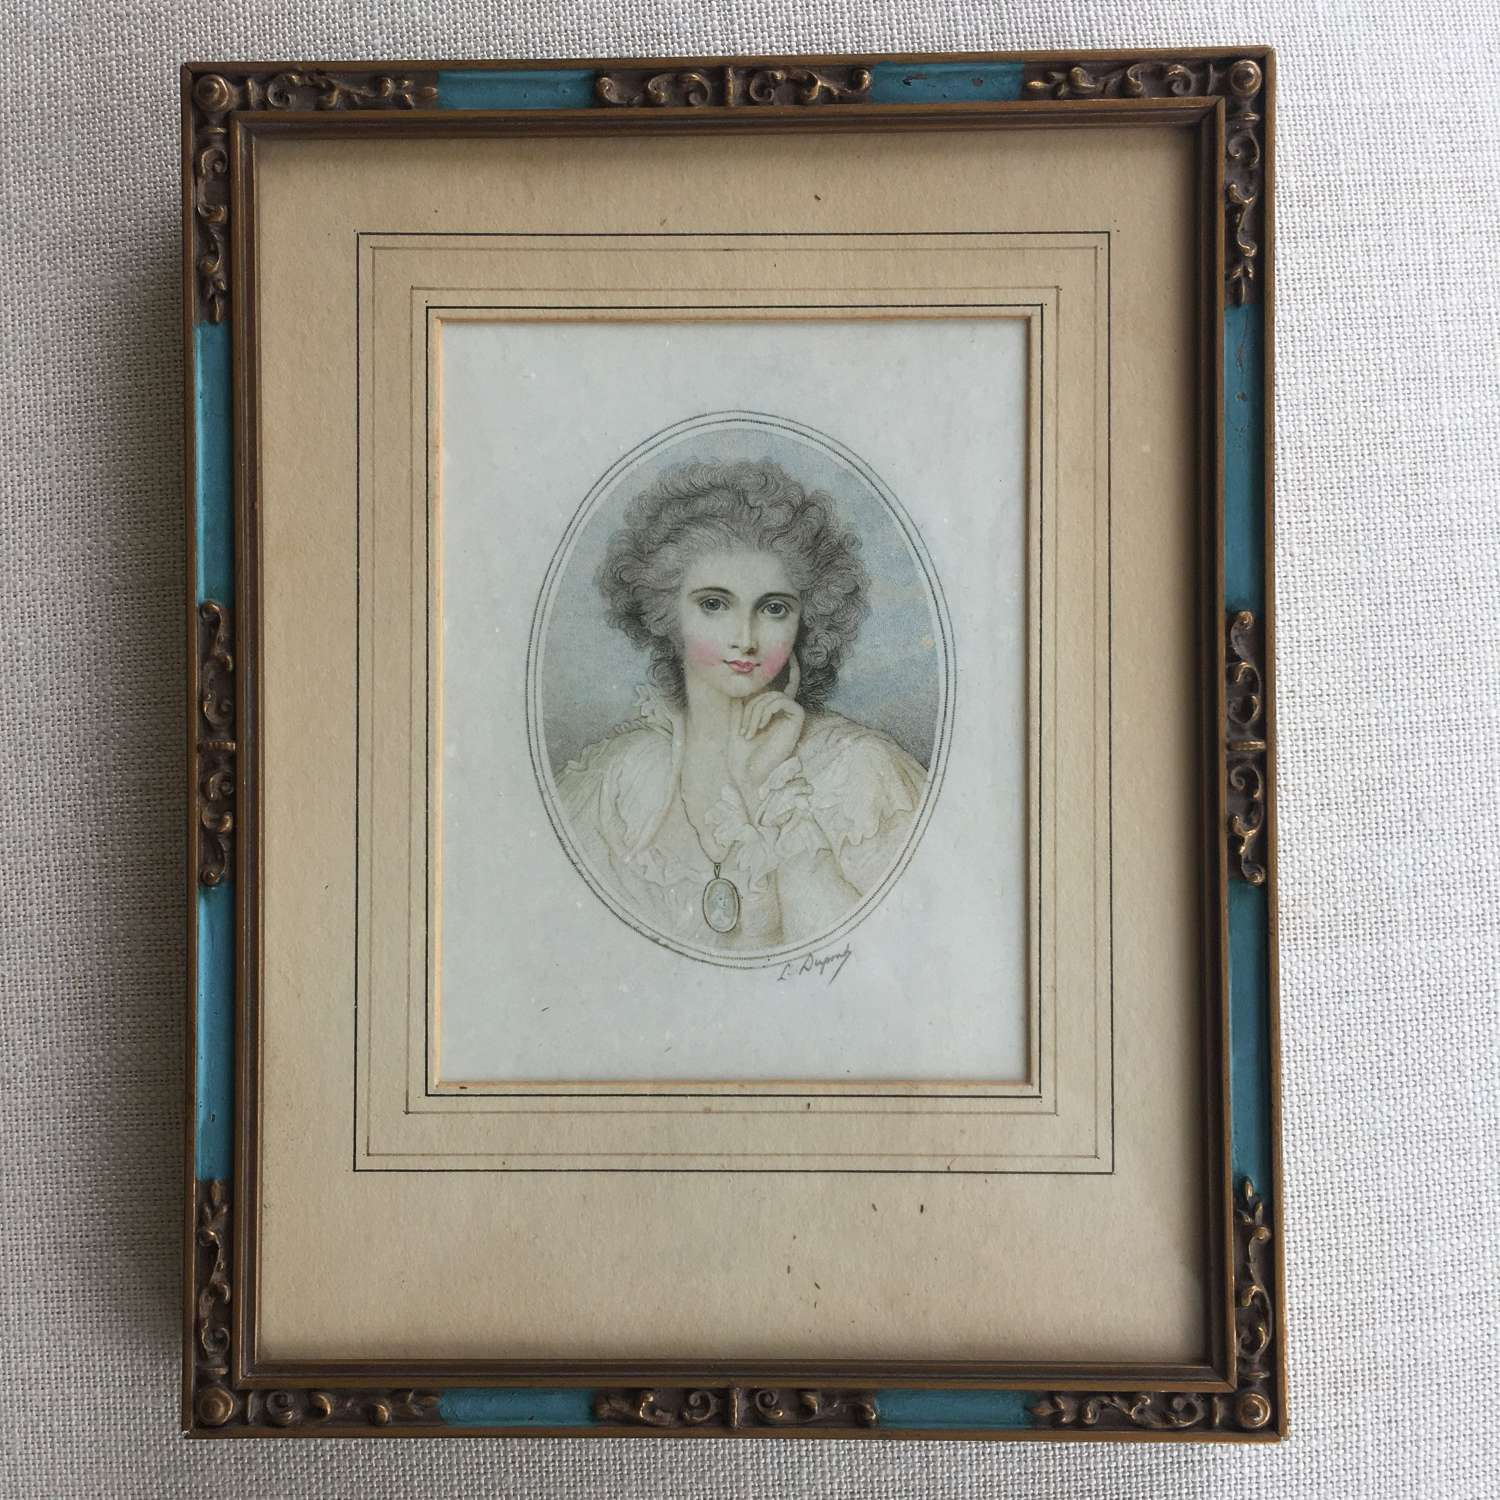 Antique limited edition prints after Richard Cosway in original frames